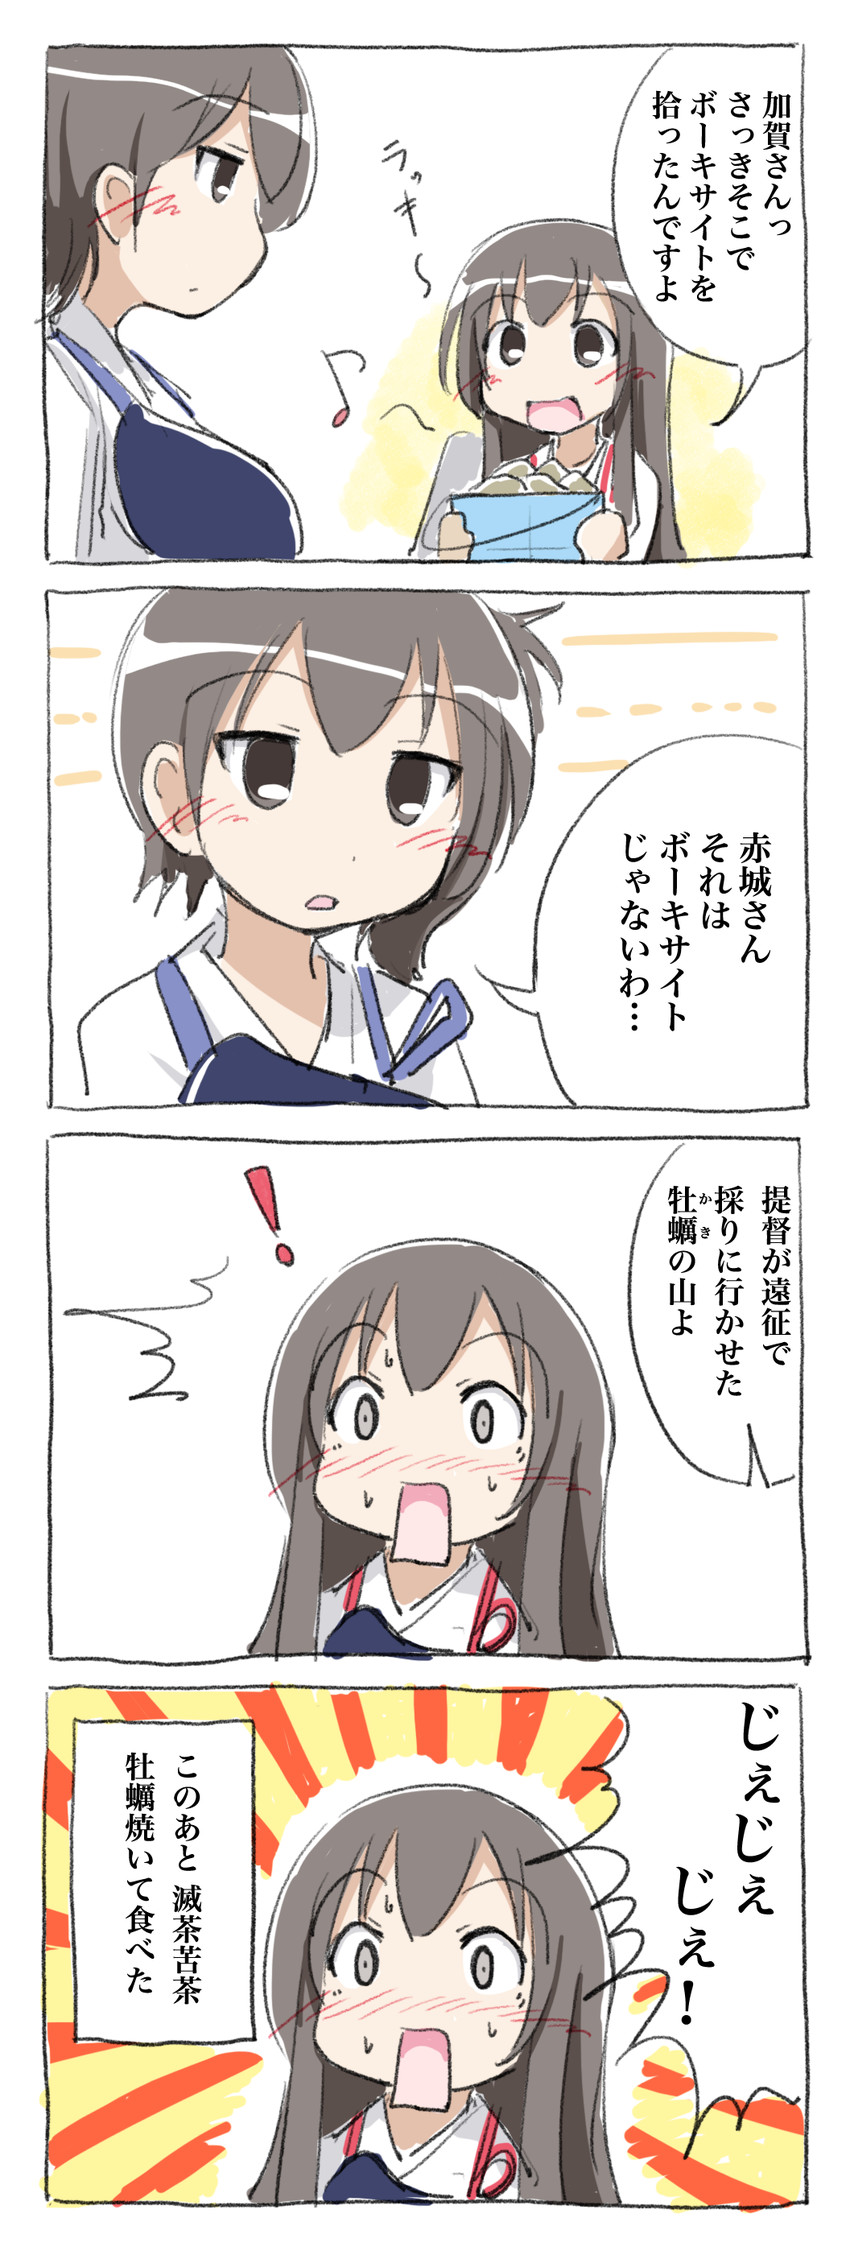 akagi and kaga (kantai collection) drawn by earth ekami